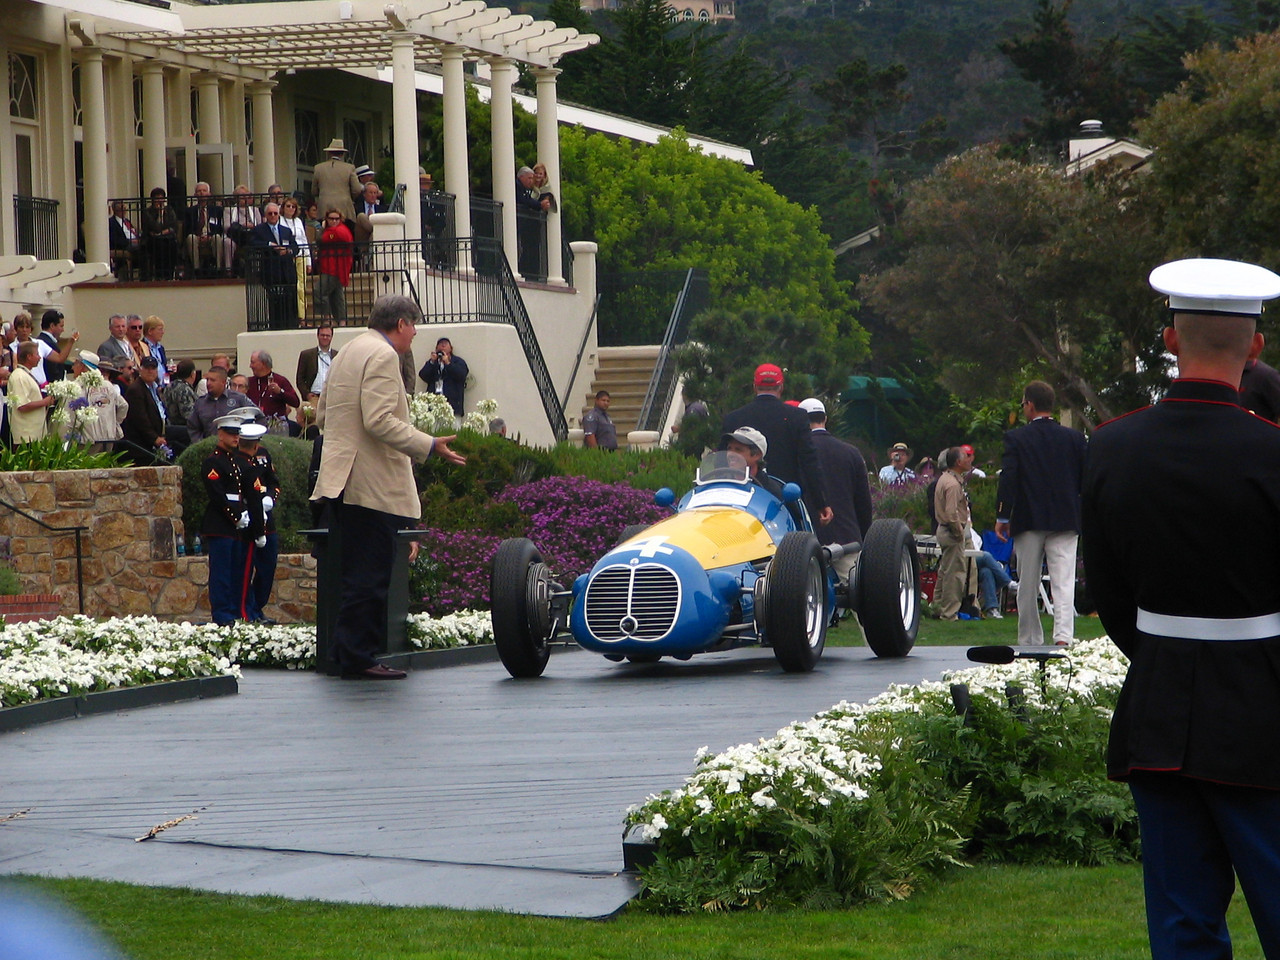 Tony Hulman Trophy sponsored by Indianapolis Motor Speedway Winner -- 1949 Maserati 4CLT/48 Monoposto